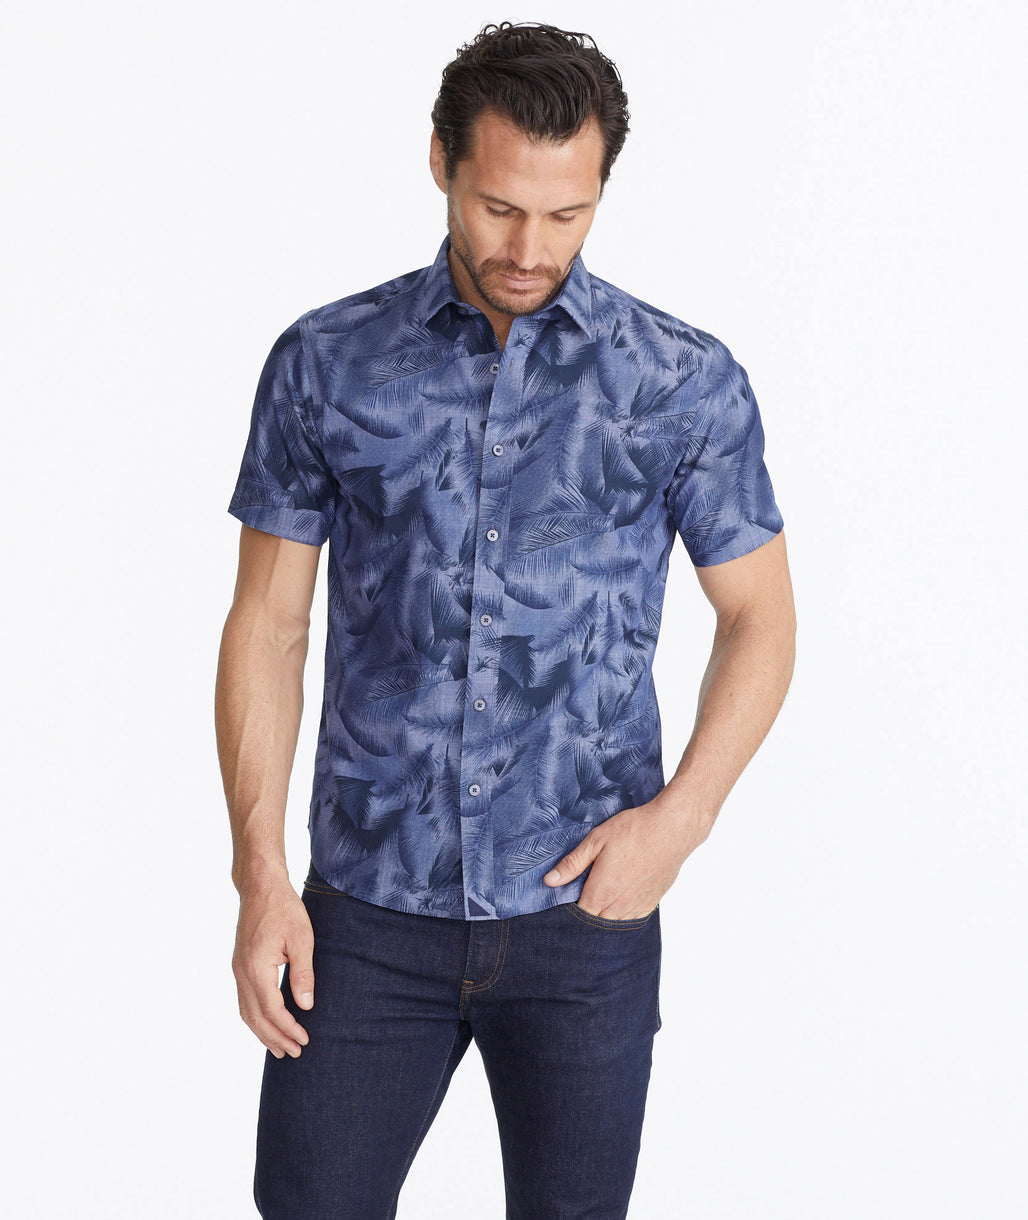 Model wearing a Navy Classic Short-Sleeve Shirt with Hawaiian Print